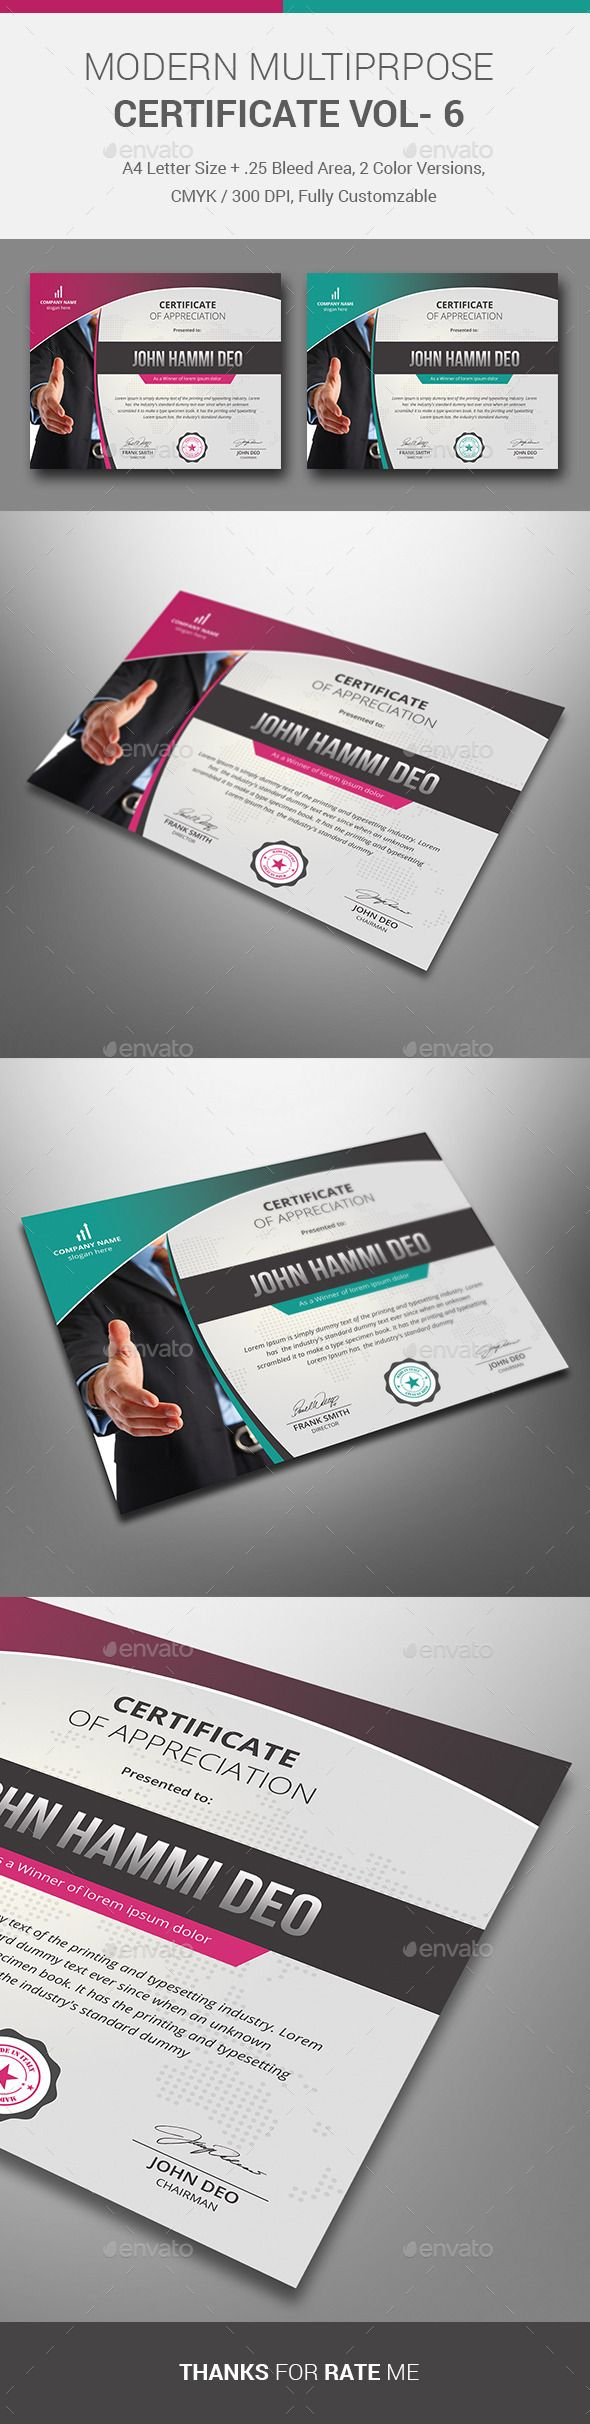 34 best certificate templates psd images on pinterest professionalcertificatetemplate is made in adobe photoshop and adobe illustrator version too download http yelopaper Choice Image